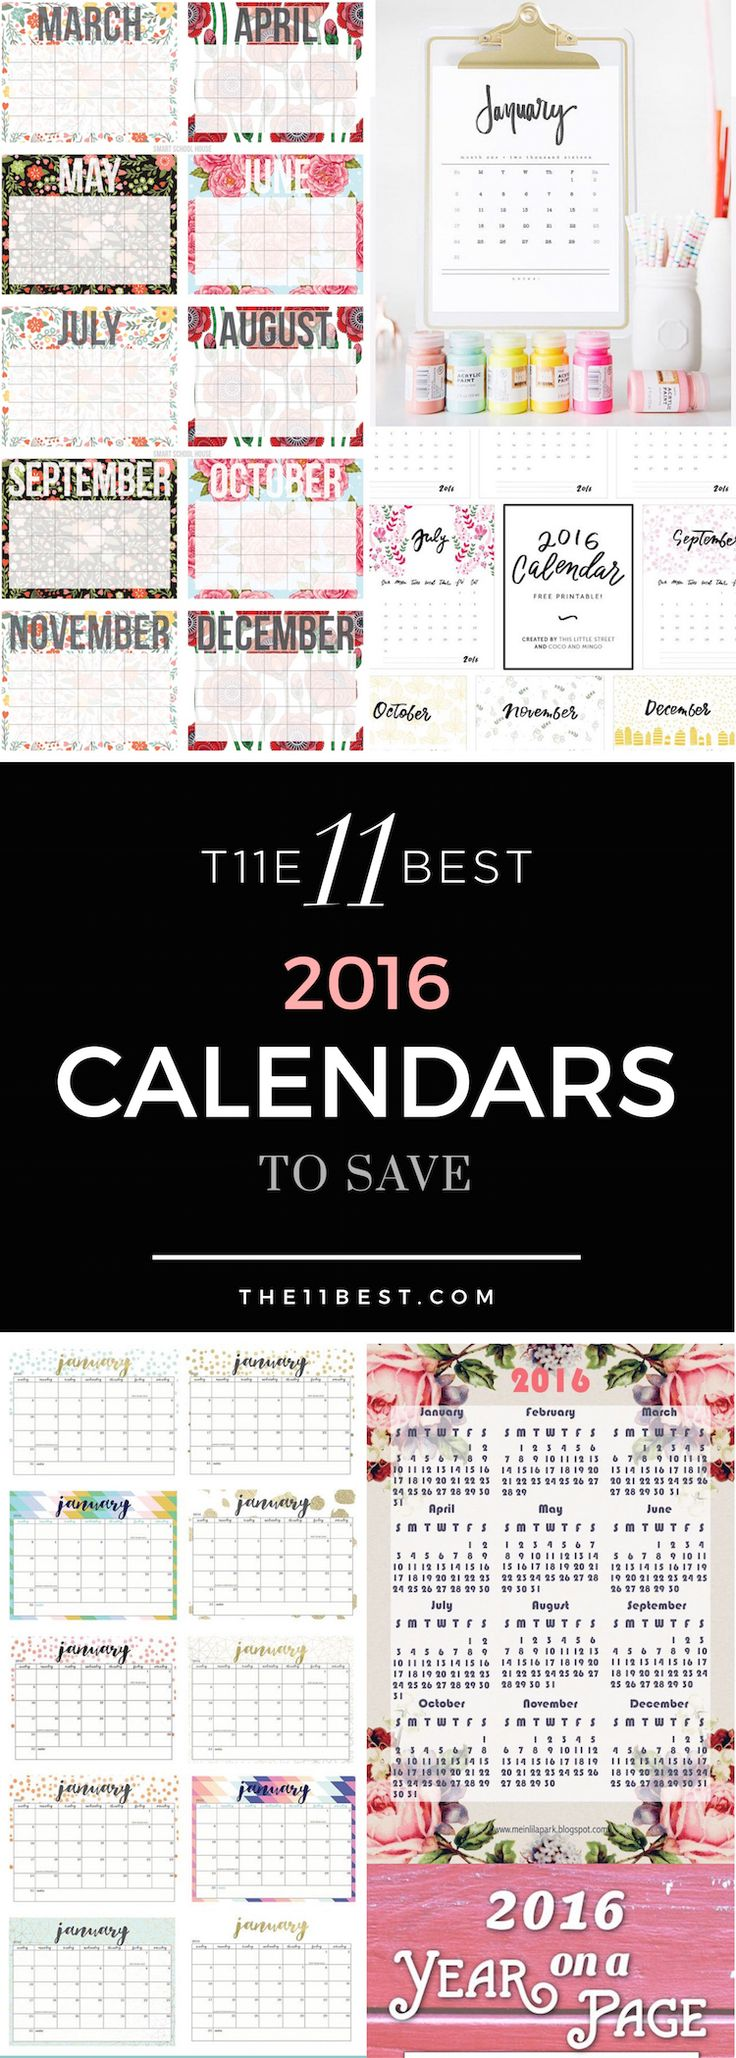 Best Calendar For Organization : Best images about bill organization on pinterest